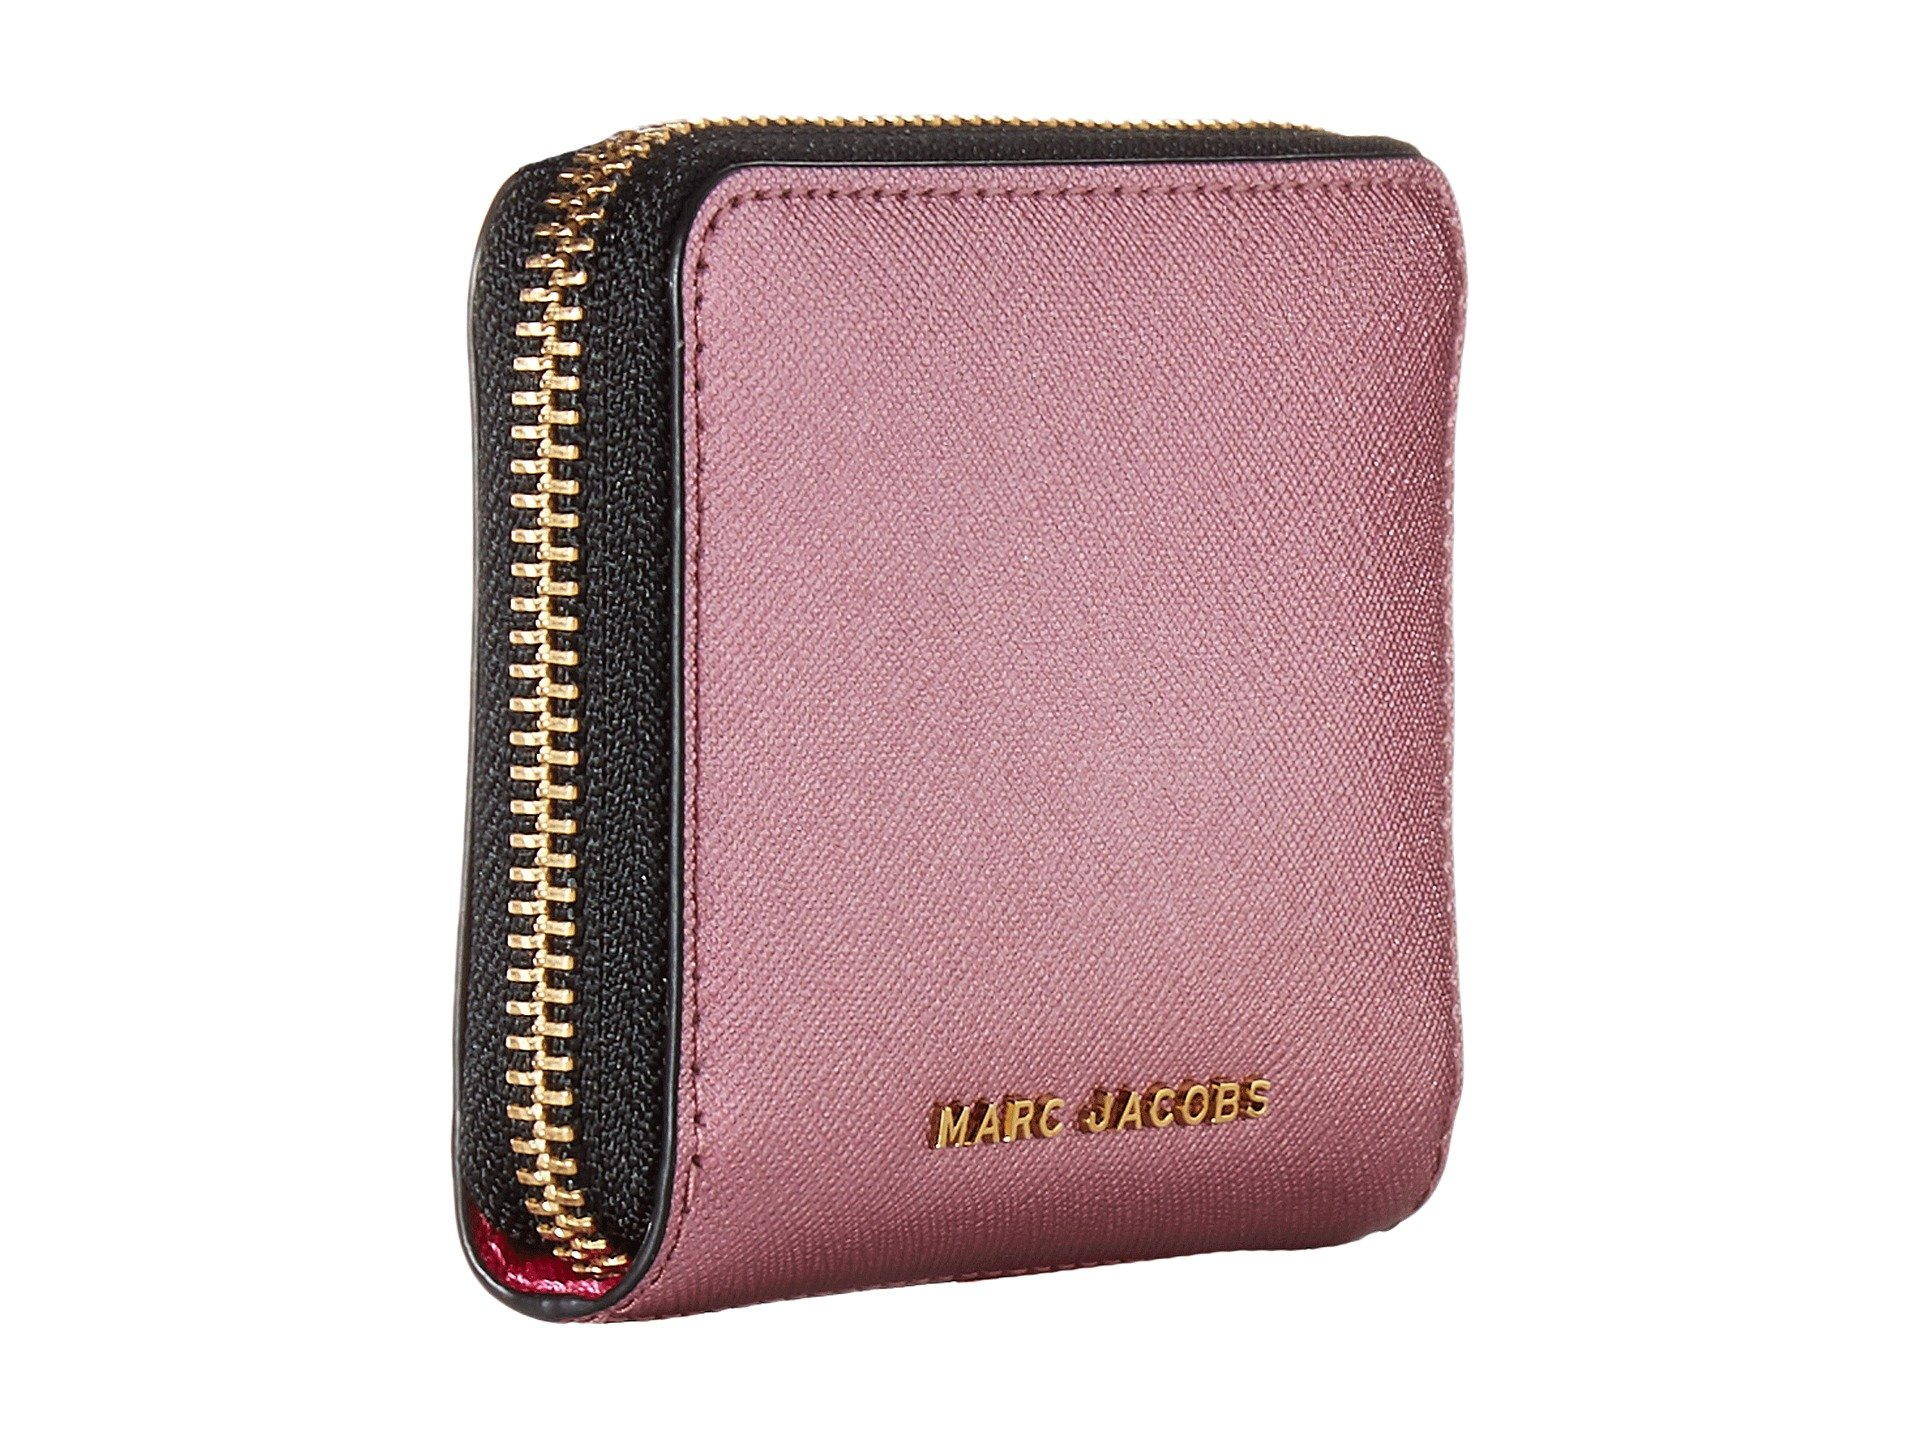 Marc Jacobs Saffiano Double J Zip Card Case at Luxury.Zappos.com